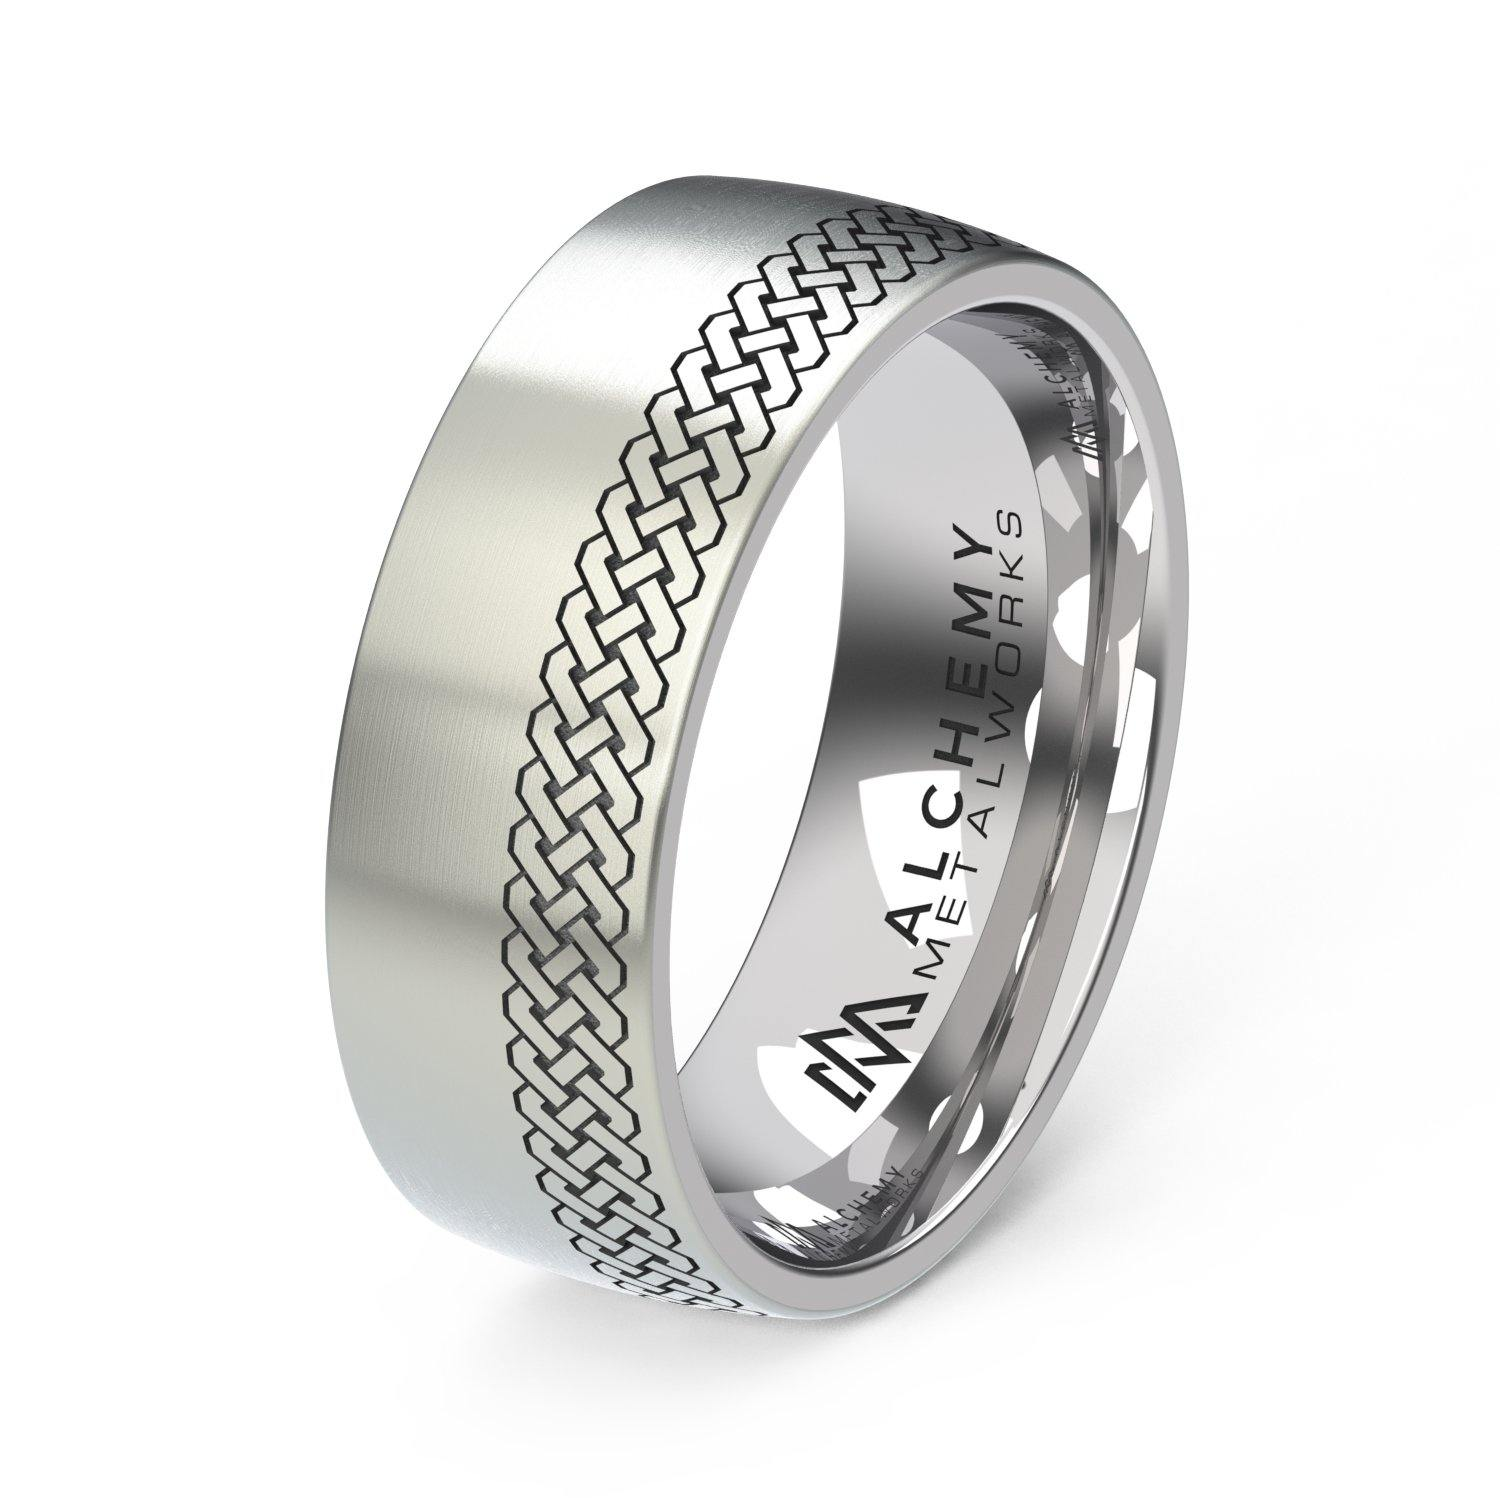 Laser Engraved Titanium Ring - Celtic Knot, Offset